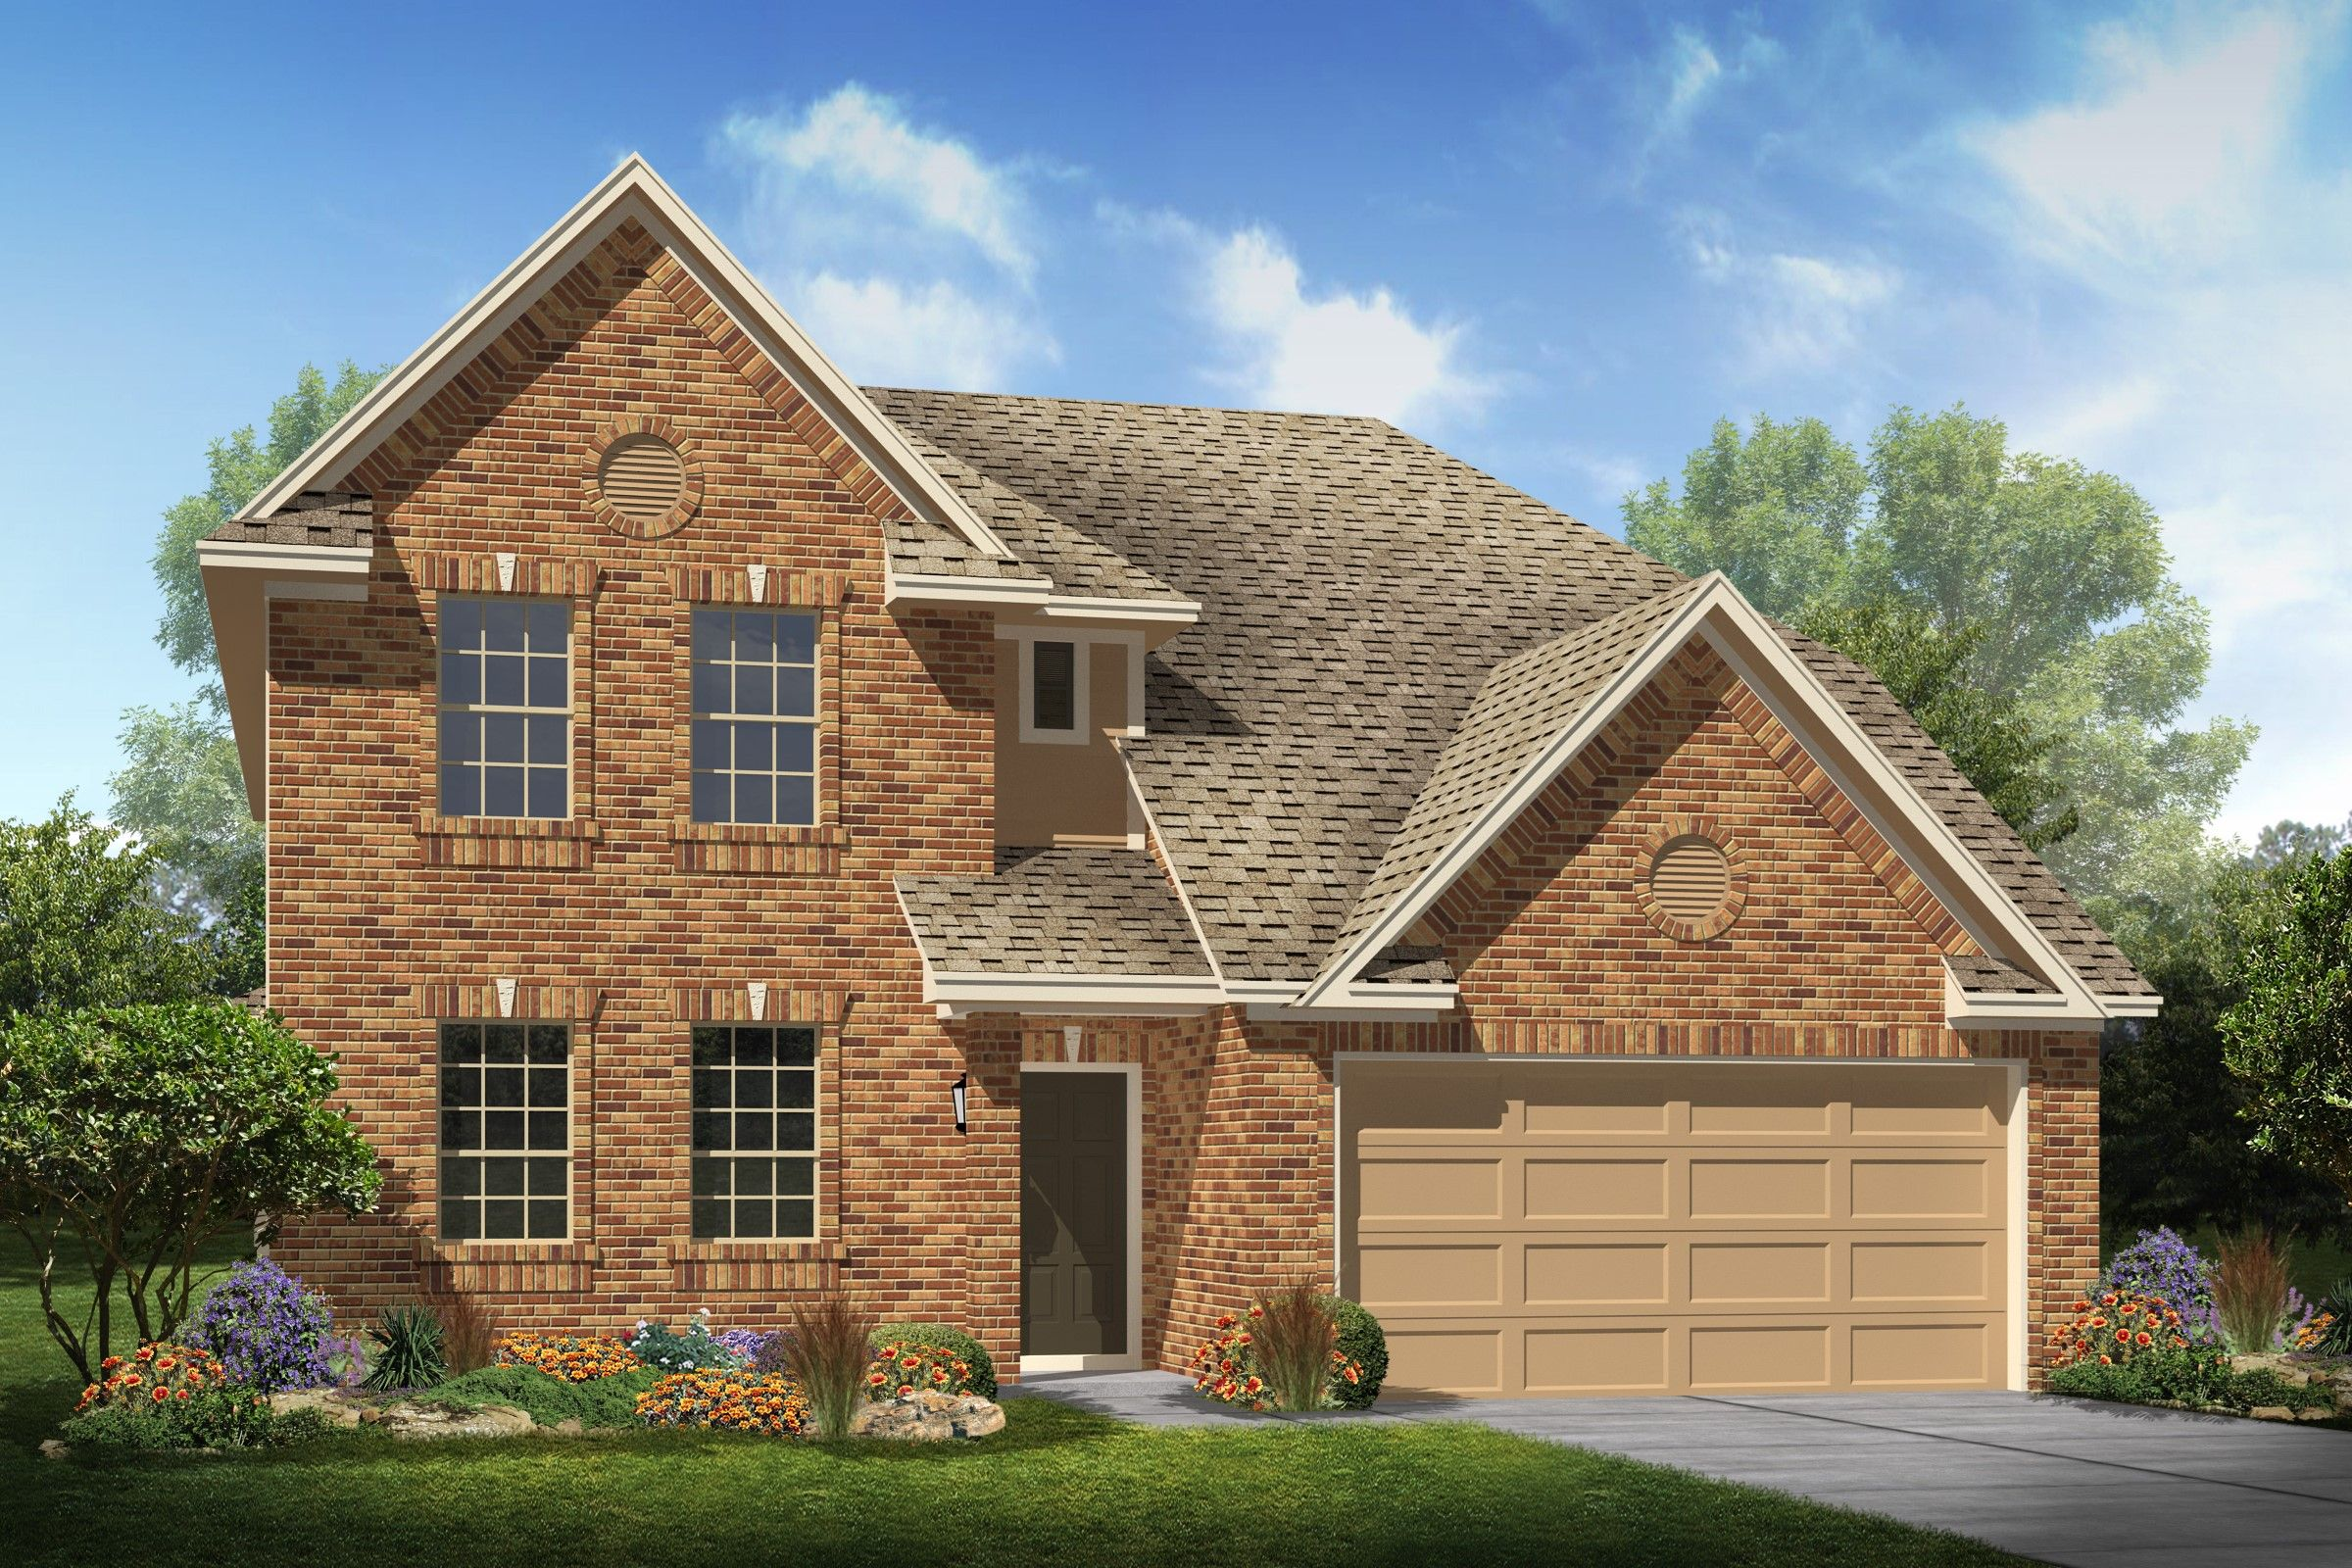 Single Family for Sale at Bayou Lakes - Bella Ii 1804 Cranston Grove Drive Dickinson, Texas 77539 United States